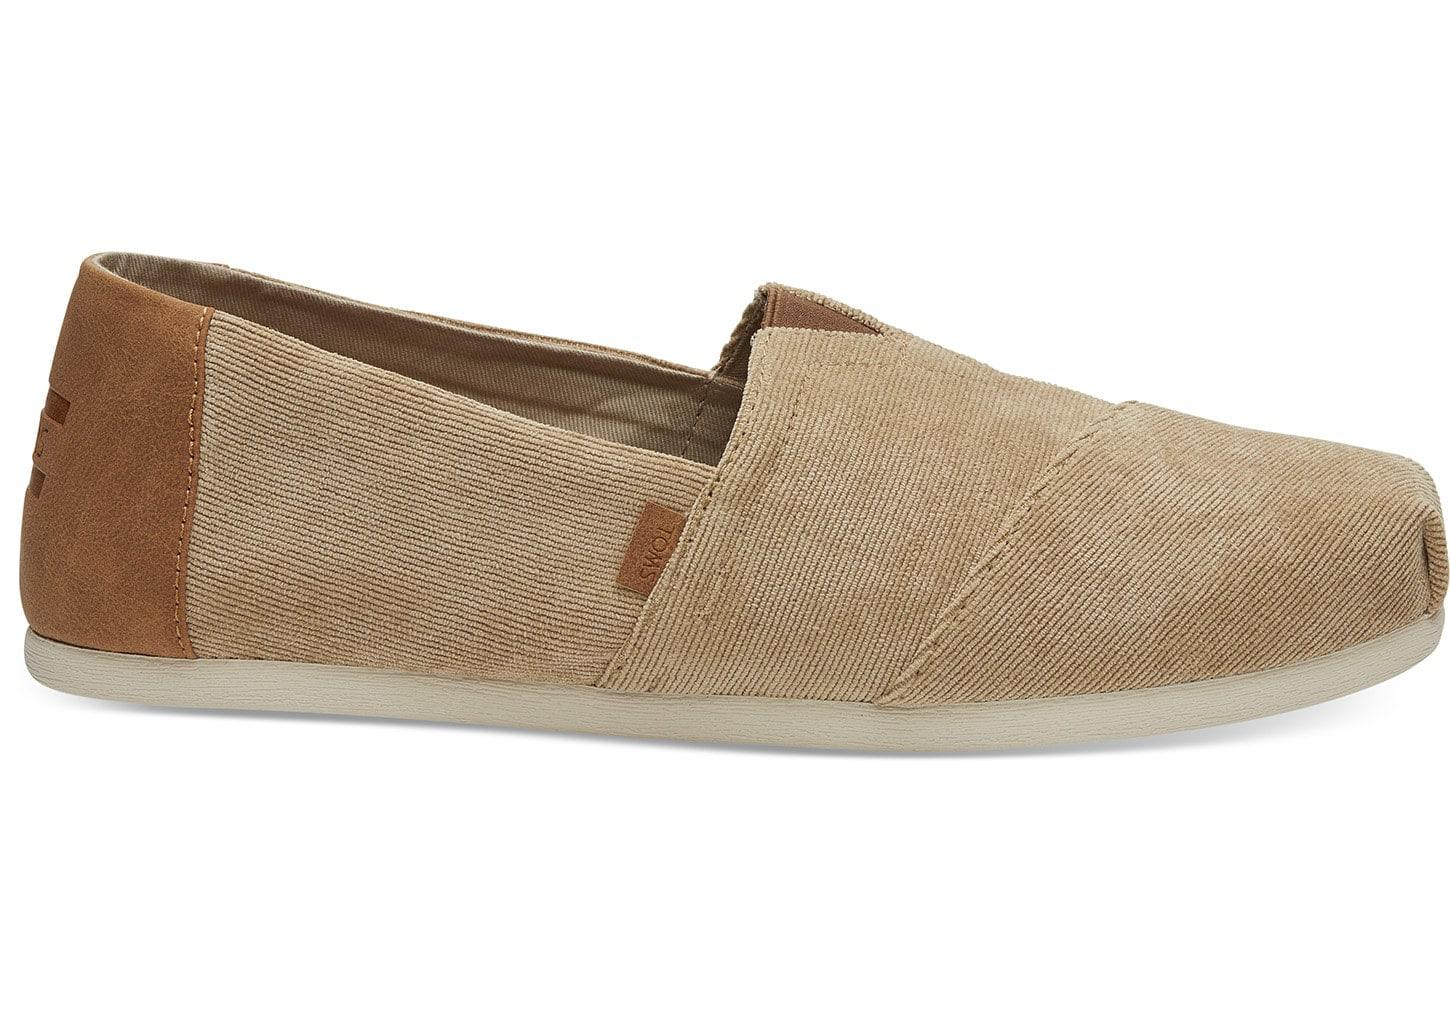 319e830cd60 TOMS Toffee Corduroy Men s Classics in Natural for Men - Save 25% - Lyst